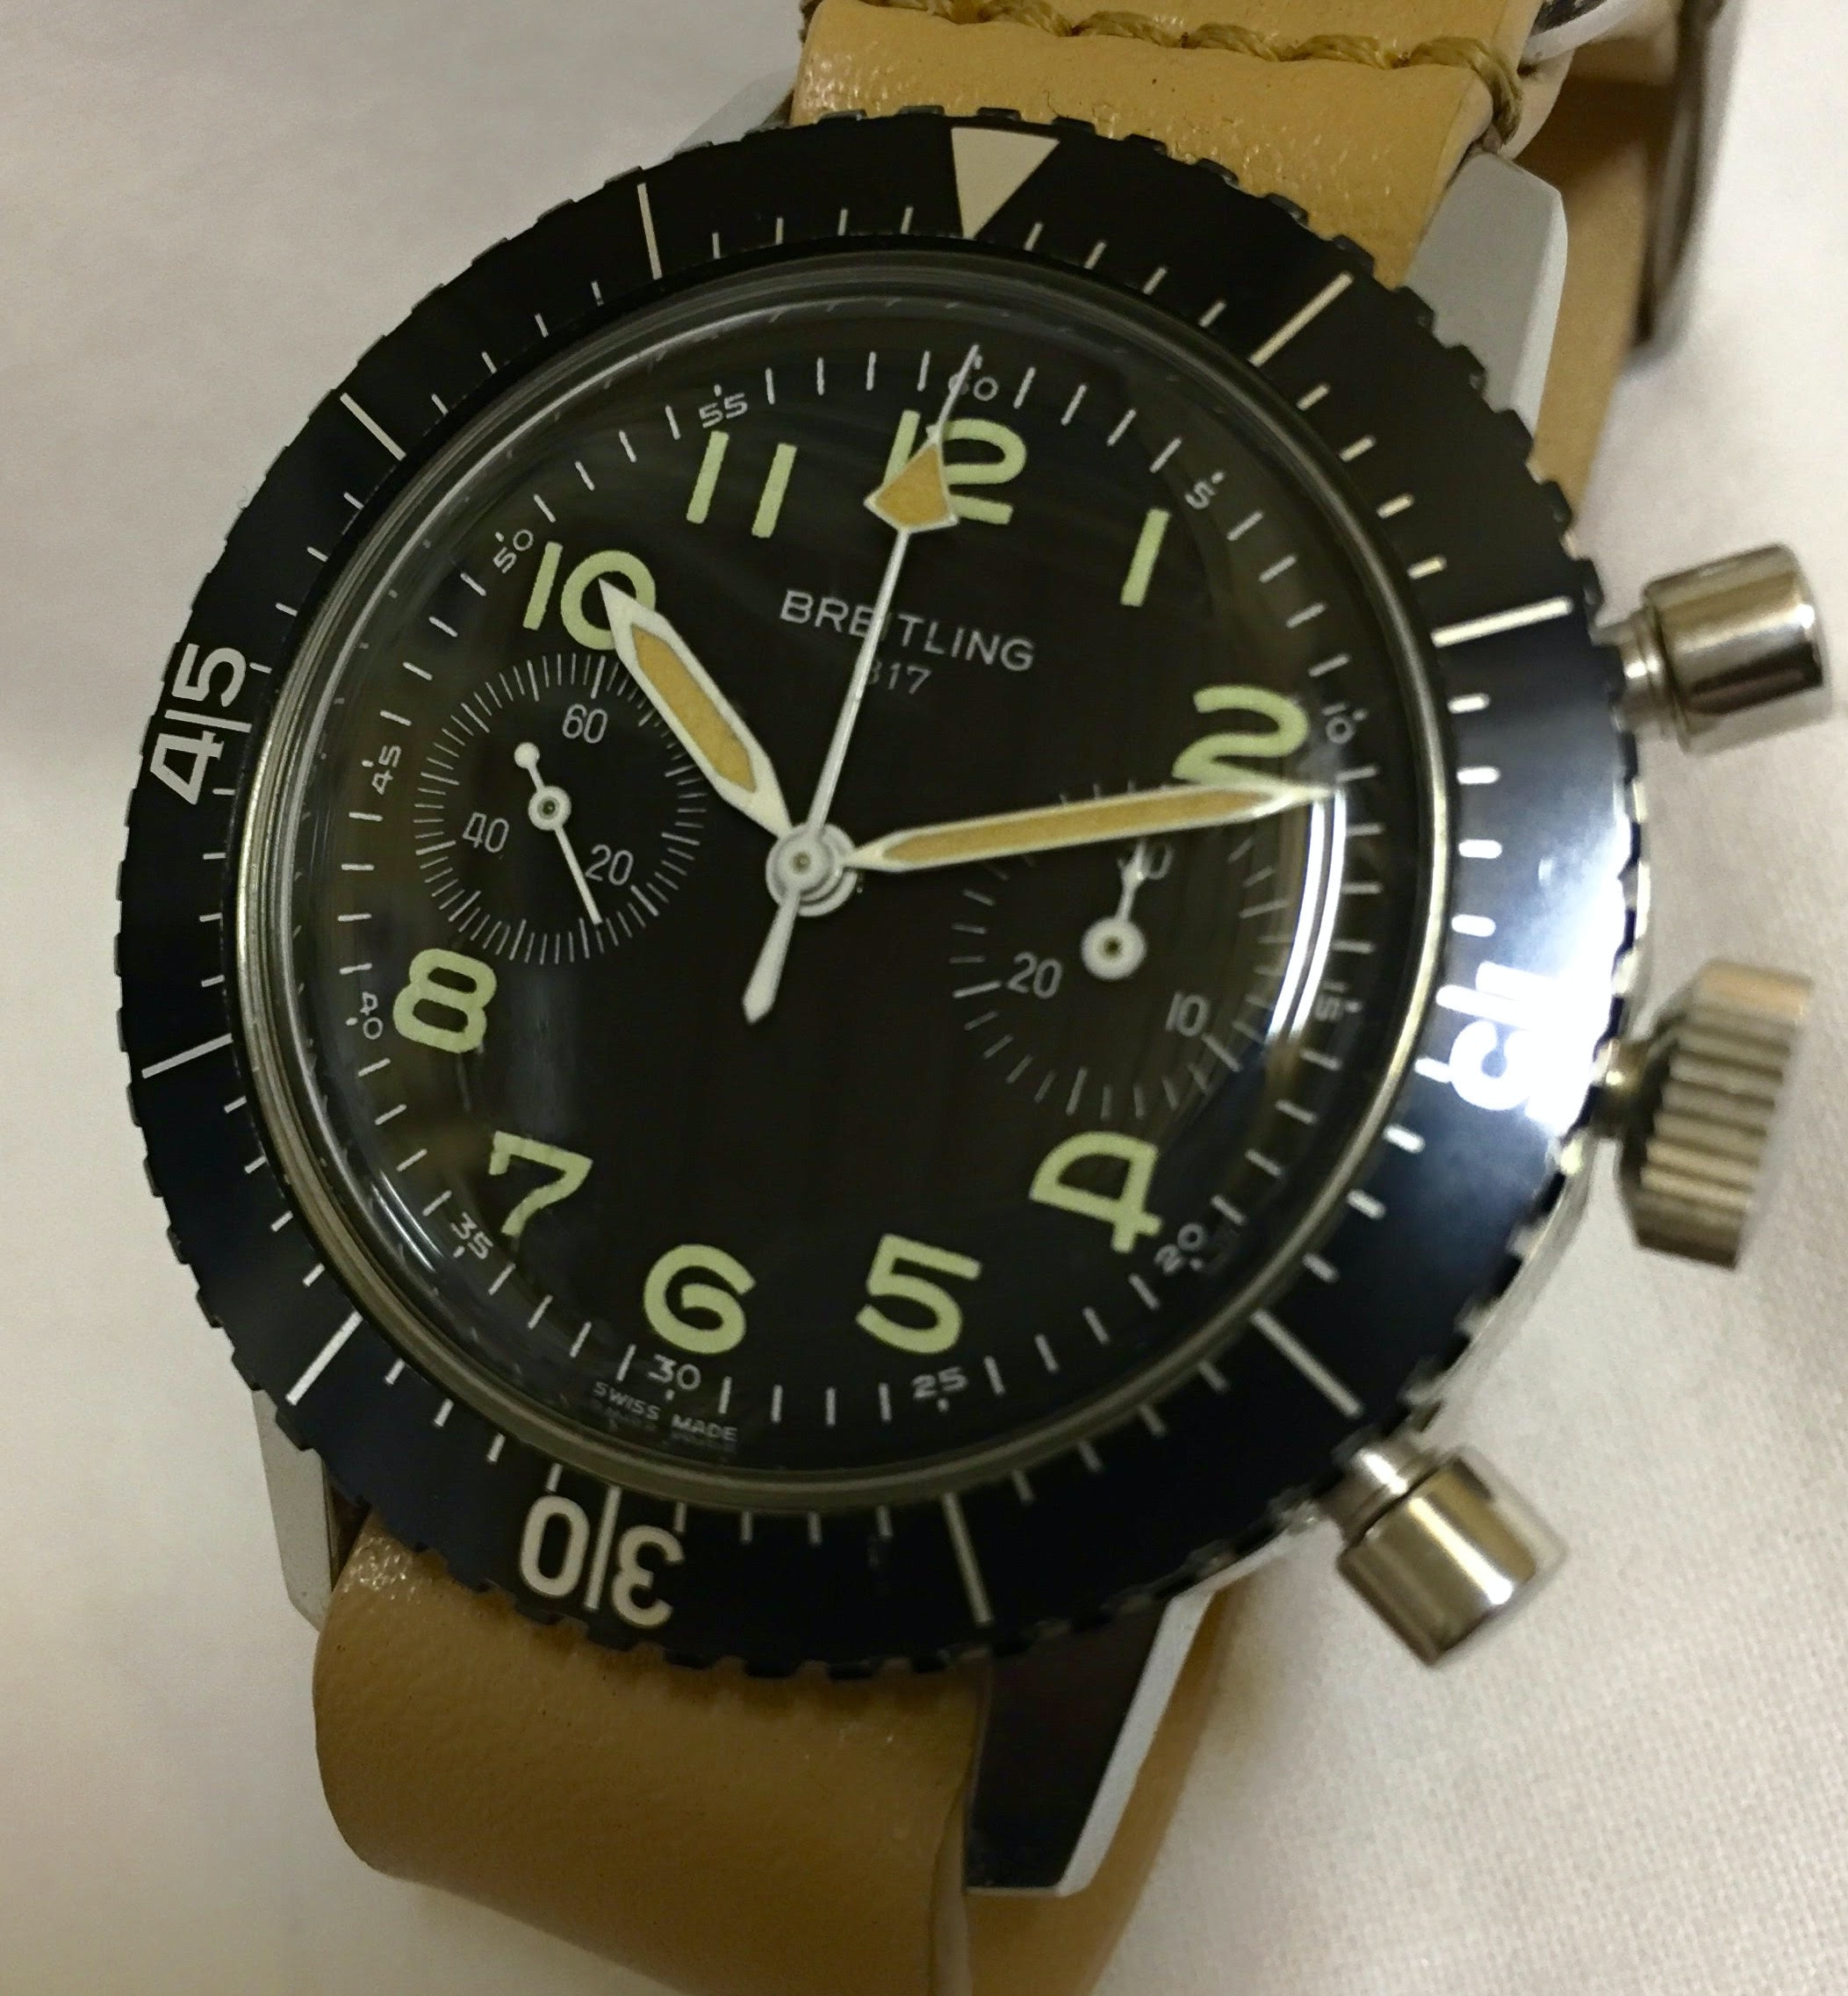 Breitling Reference 817 CP-1 E.I